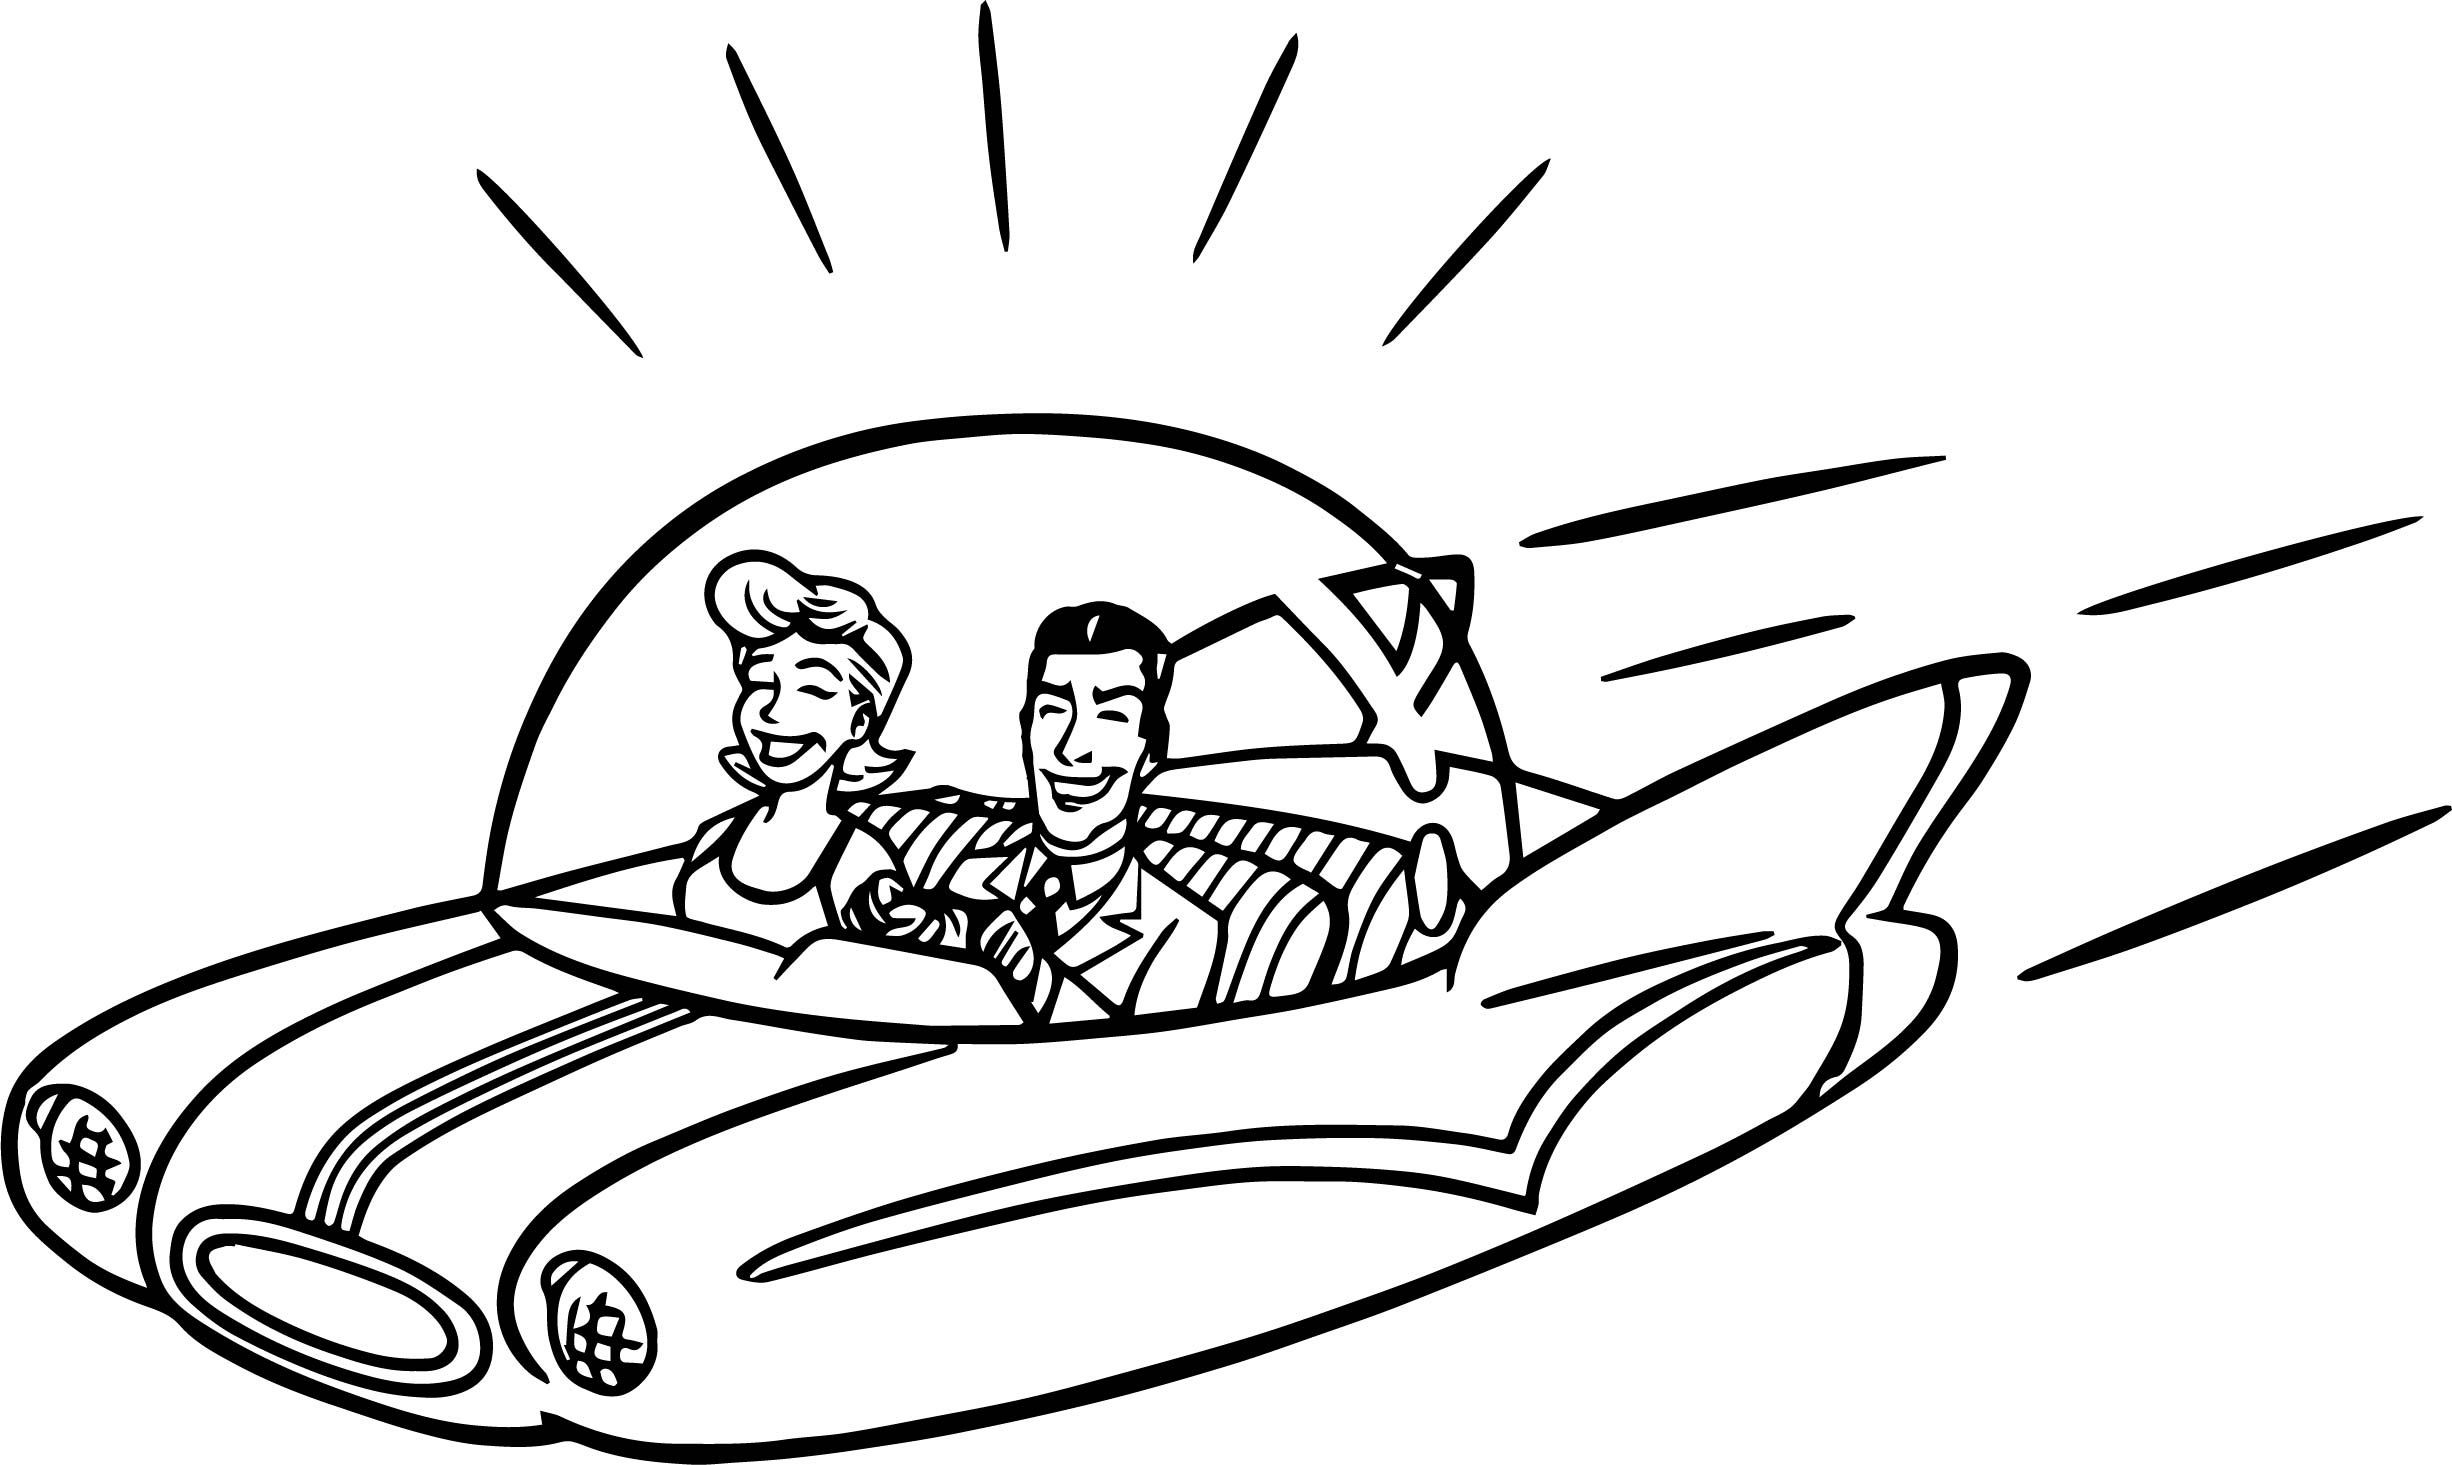 new jetsons flying car space driving man and woman coloring page